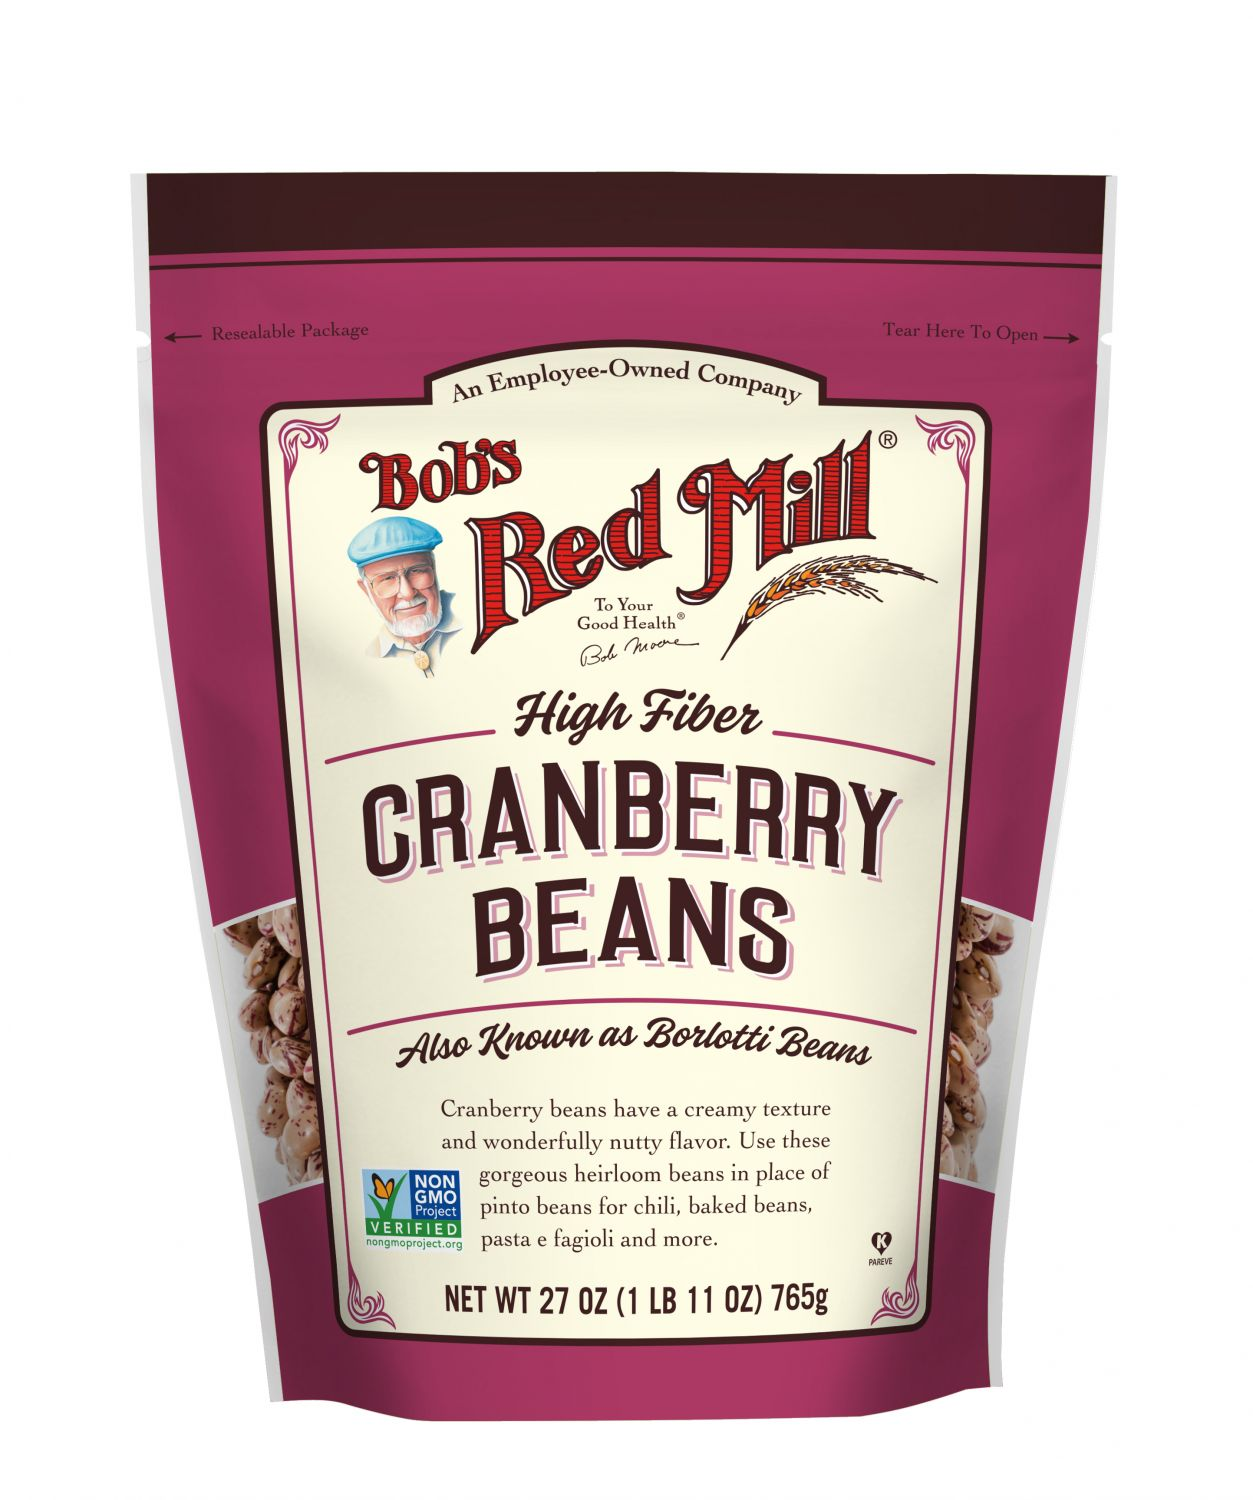 Cranberry Beans :: Bob's Red Mill